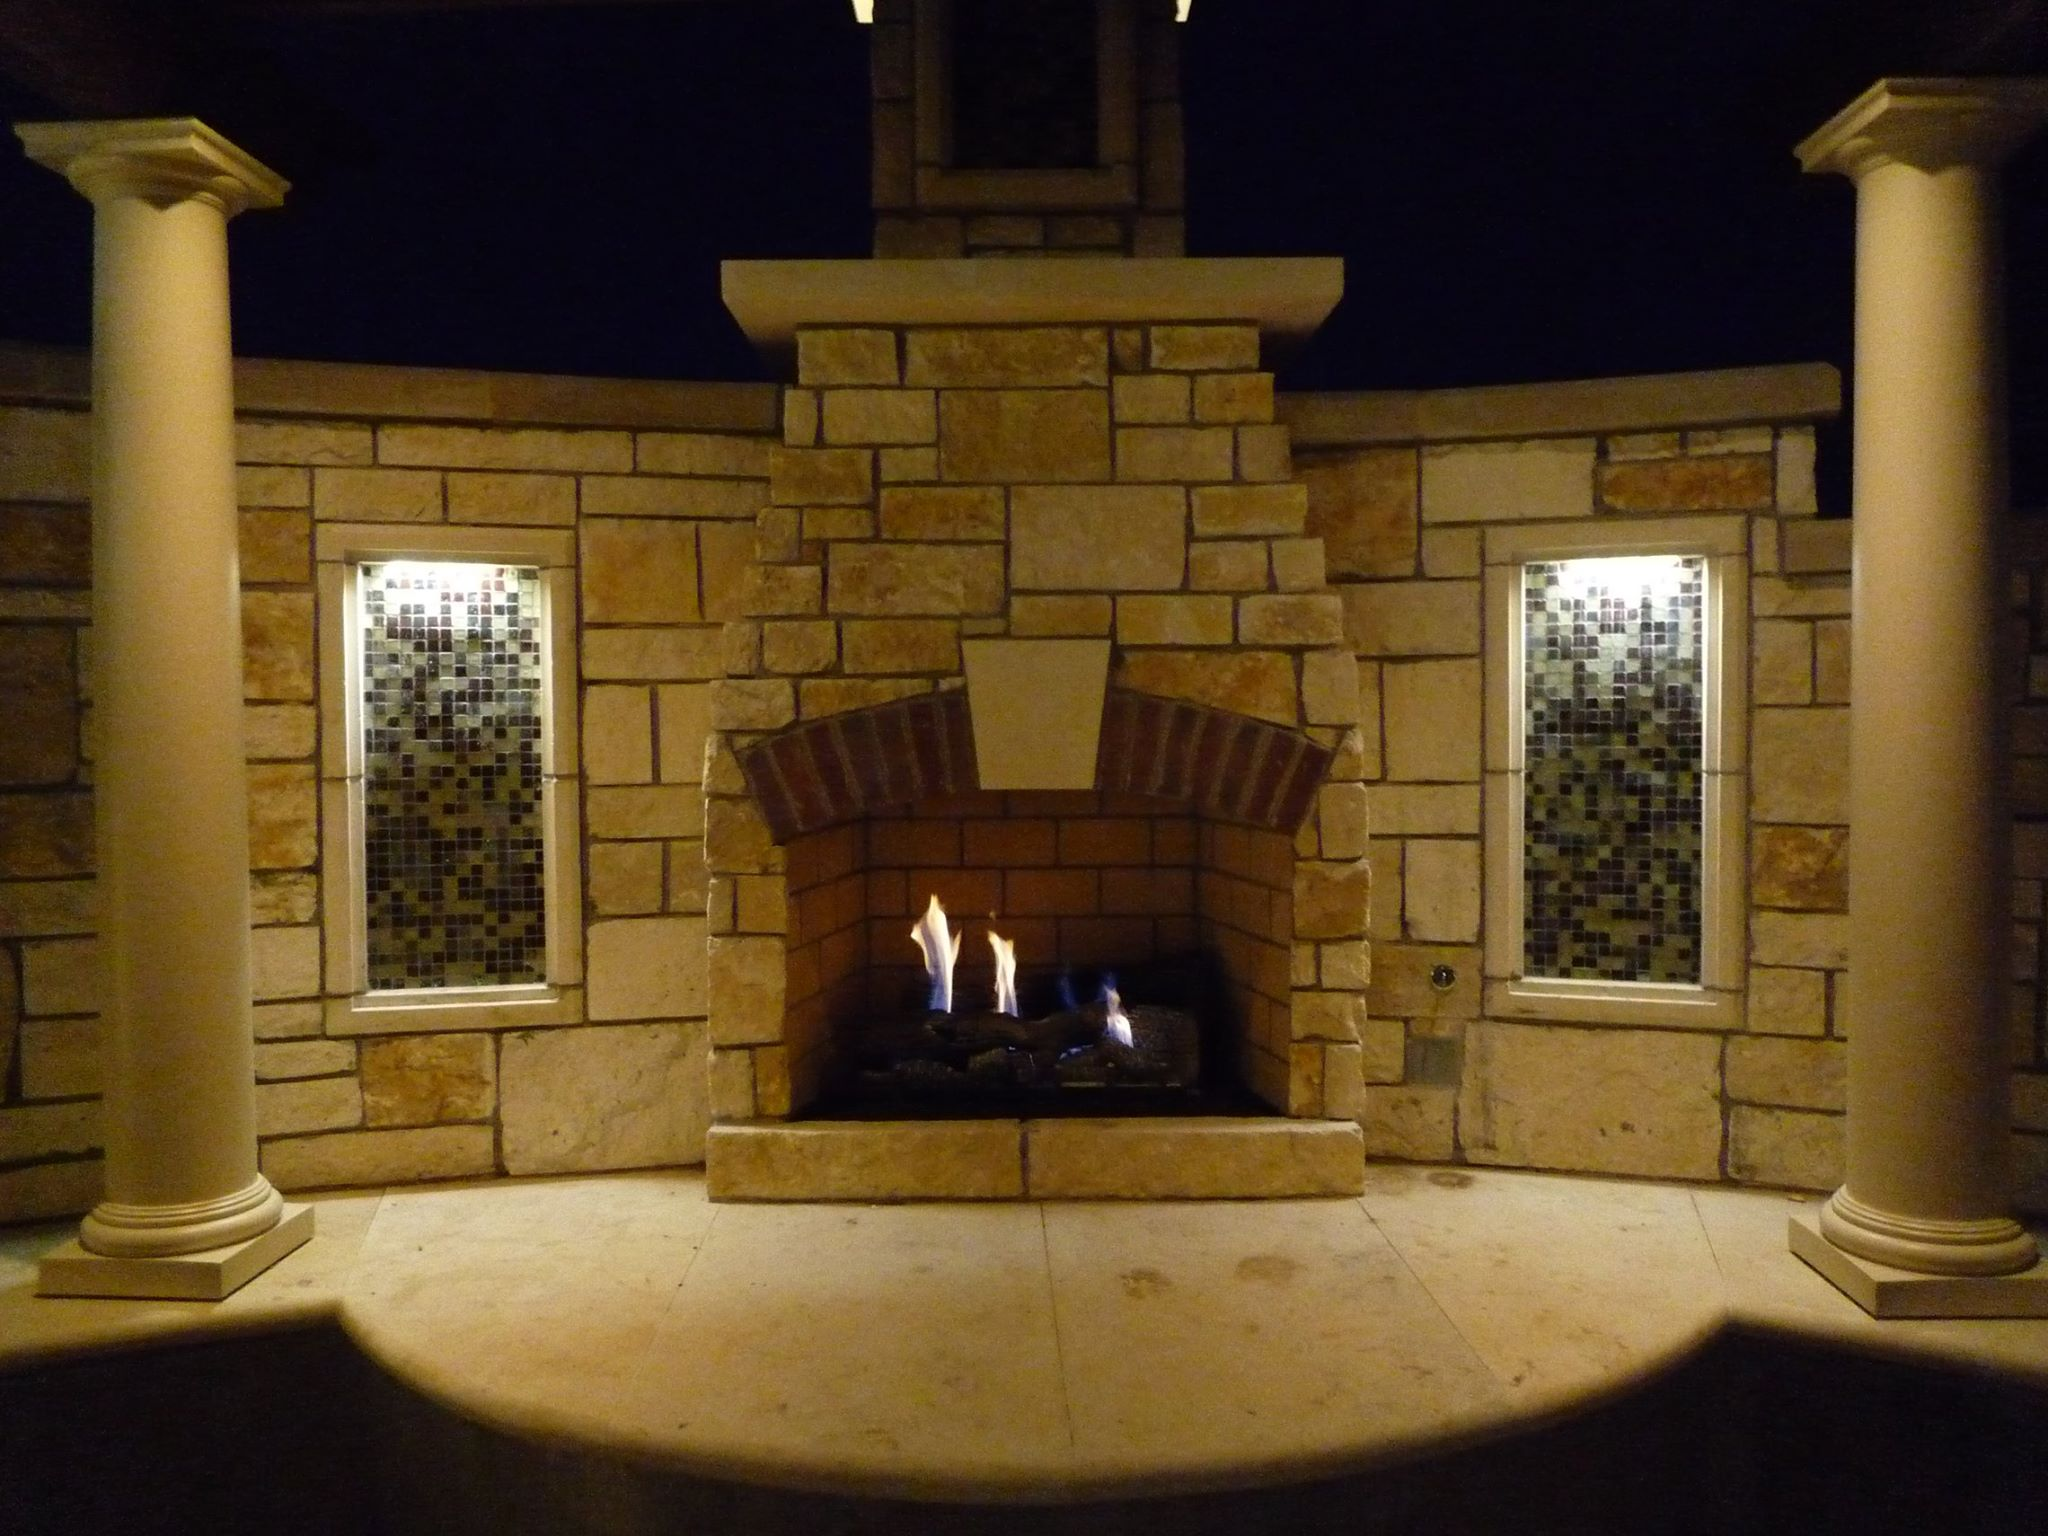 The Fireside Patio